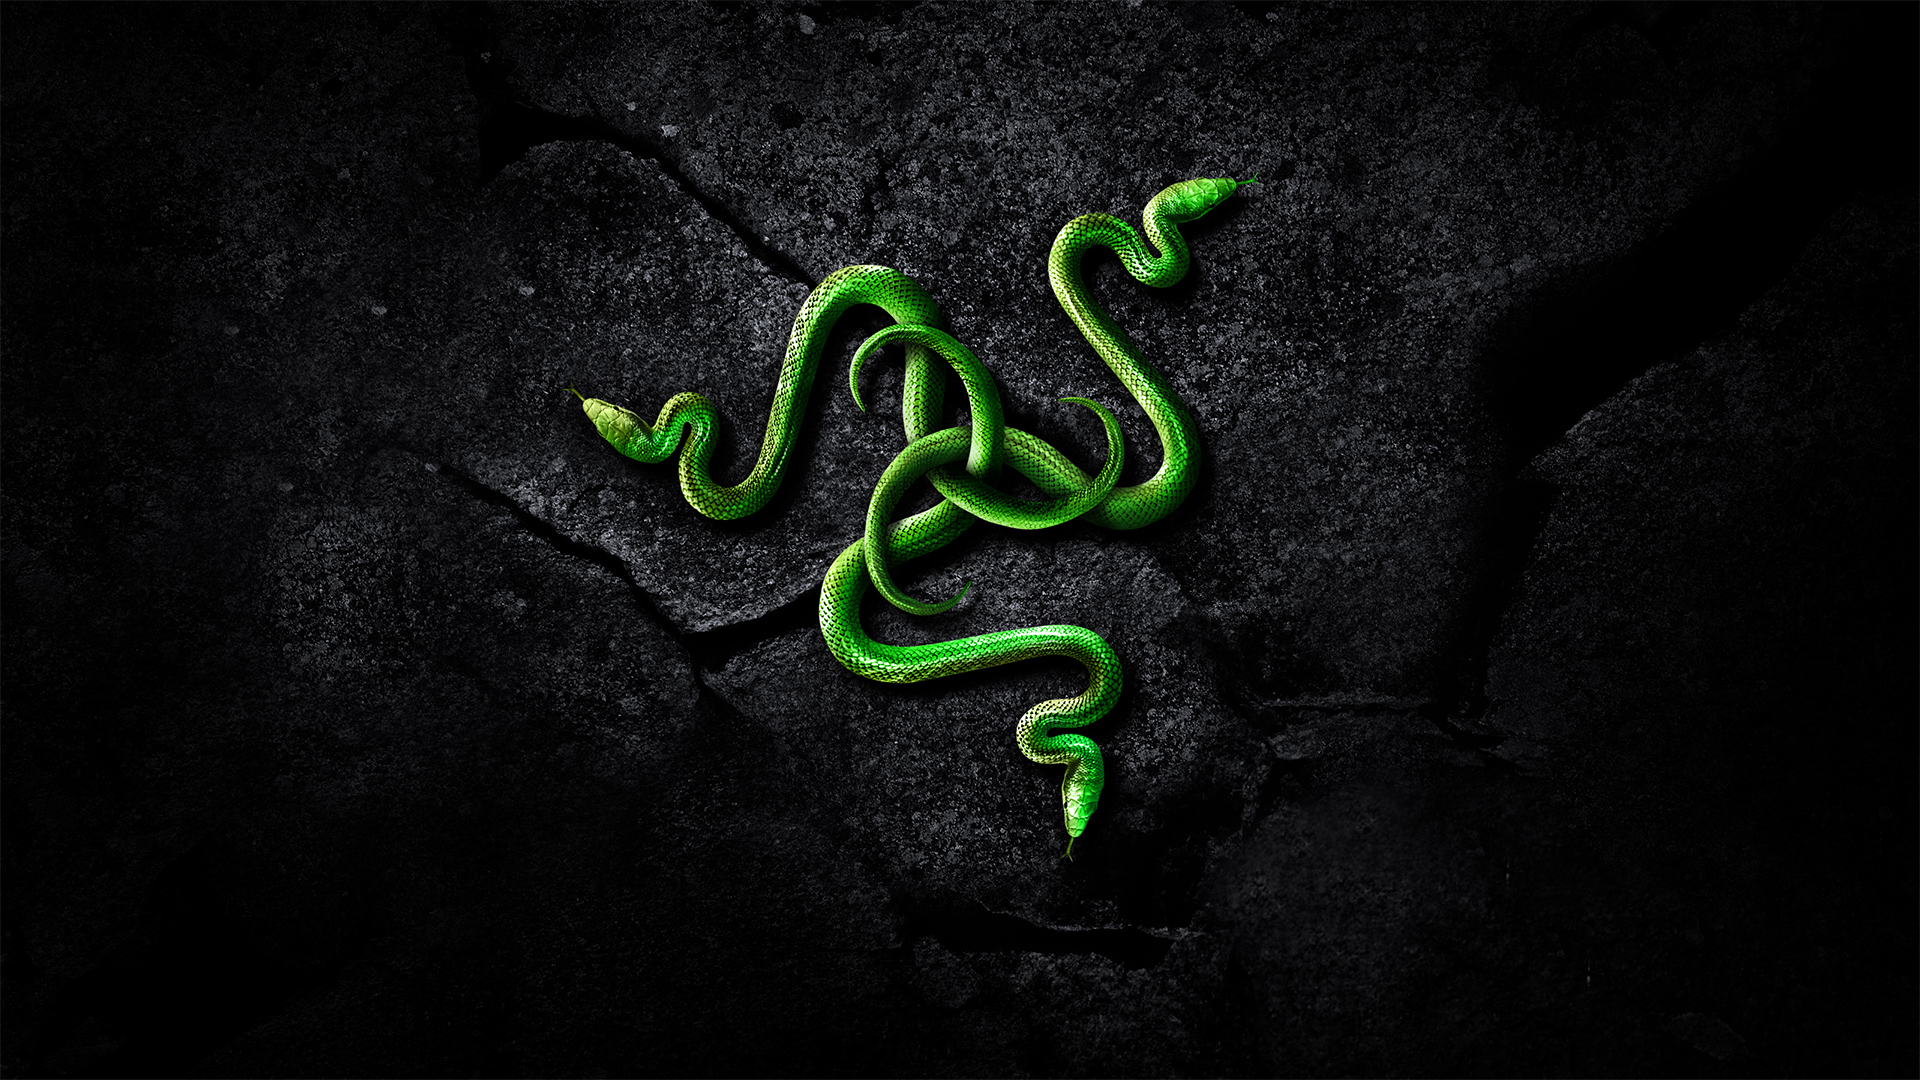 Razer Wallpaper 1080P Wallpaper